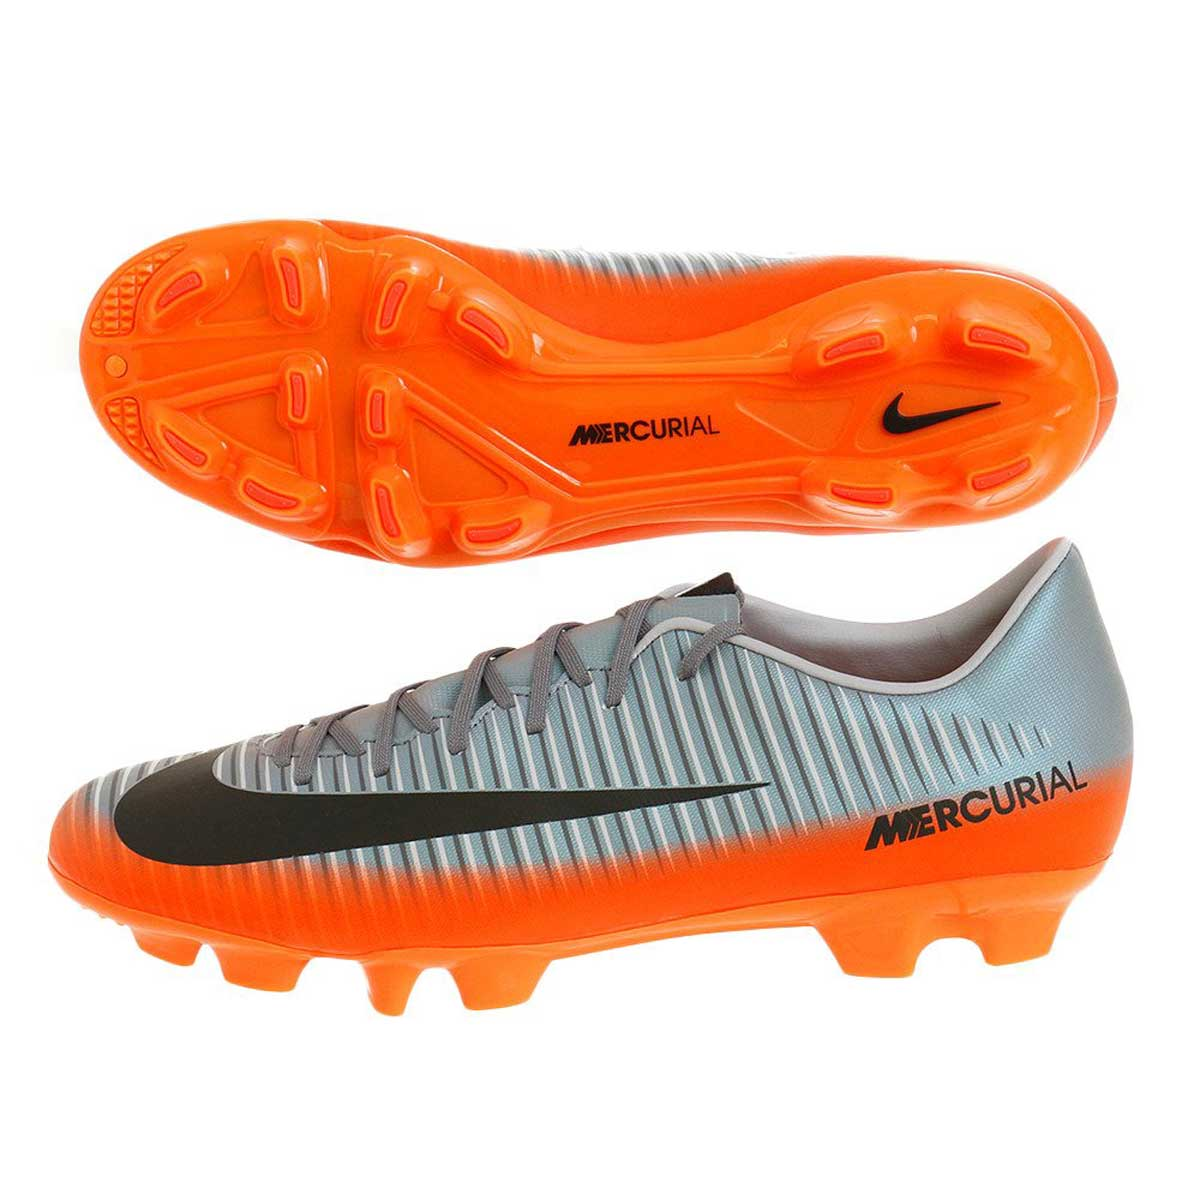 Cr7 Men 's Shoes Best Price in Nigeria Jumia NG